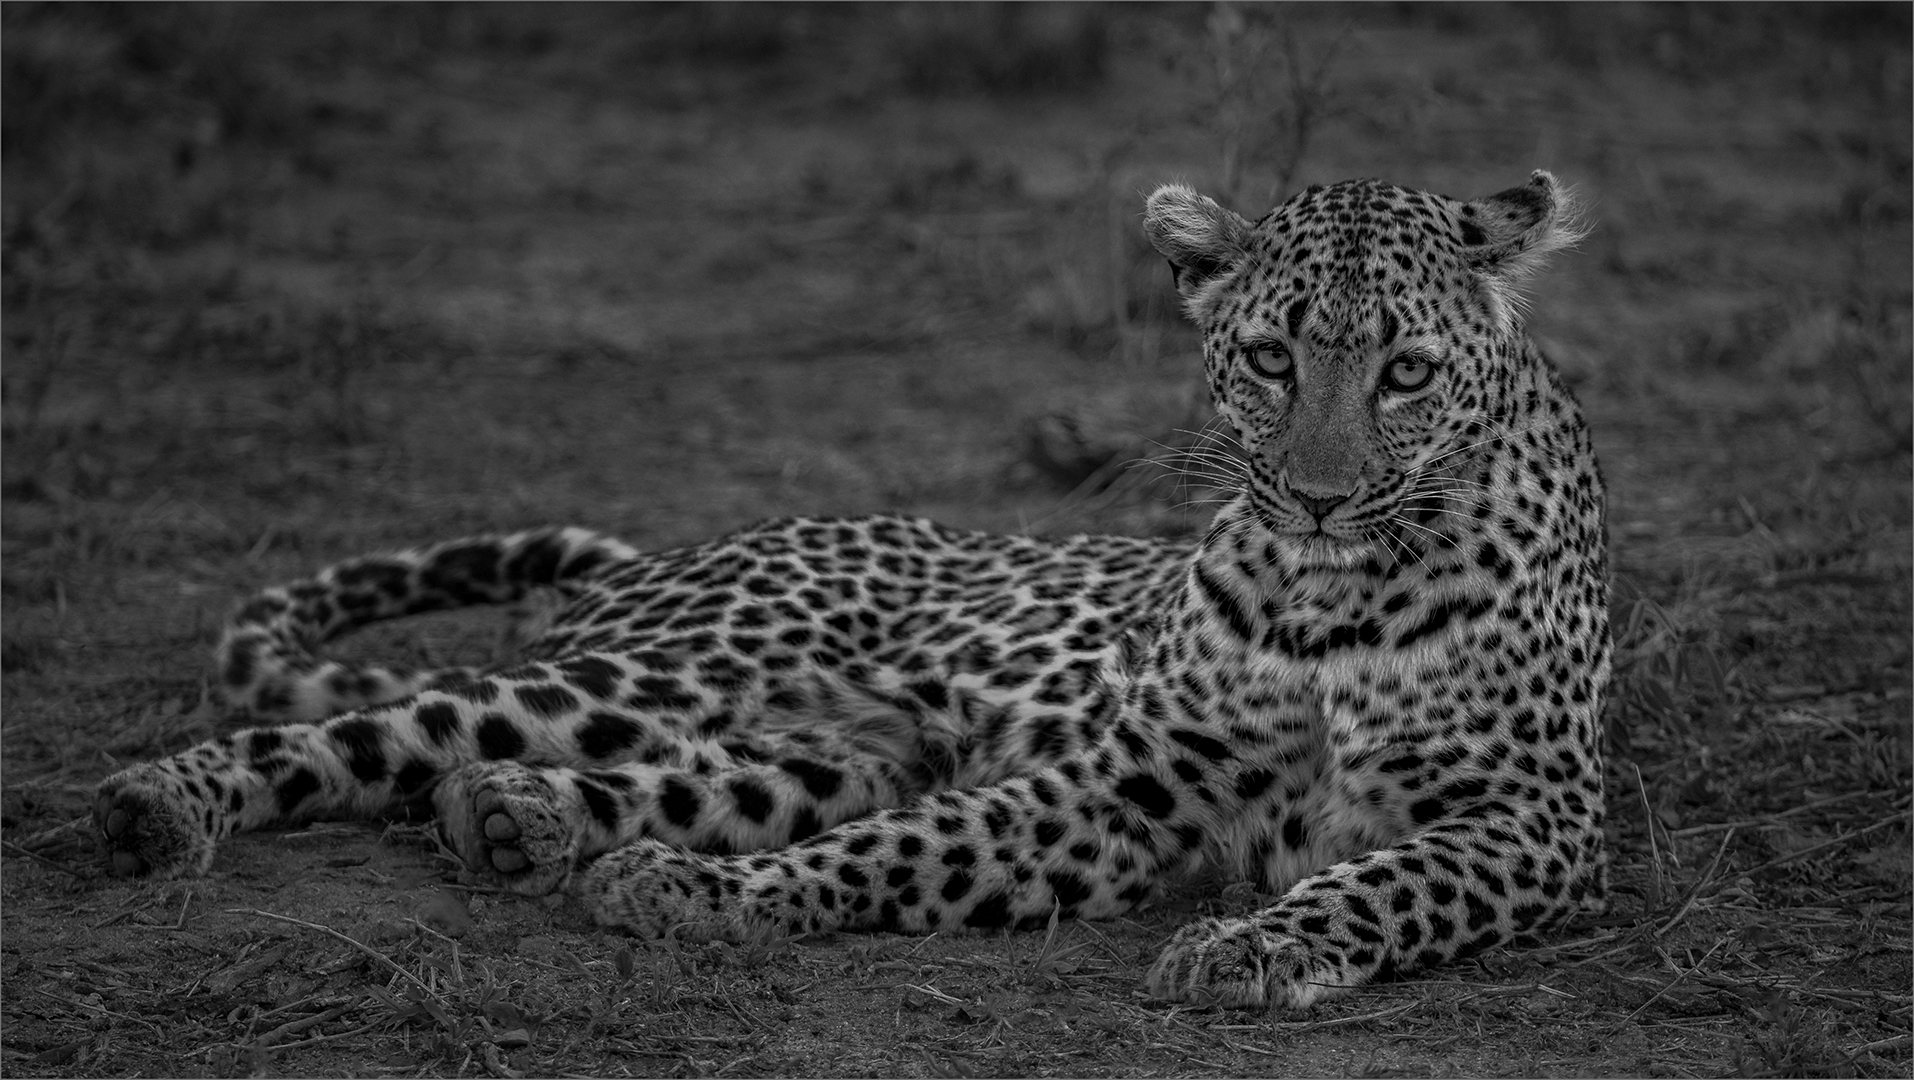 Leopard relaxing-Russell James